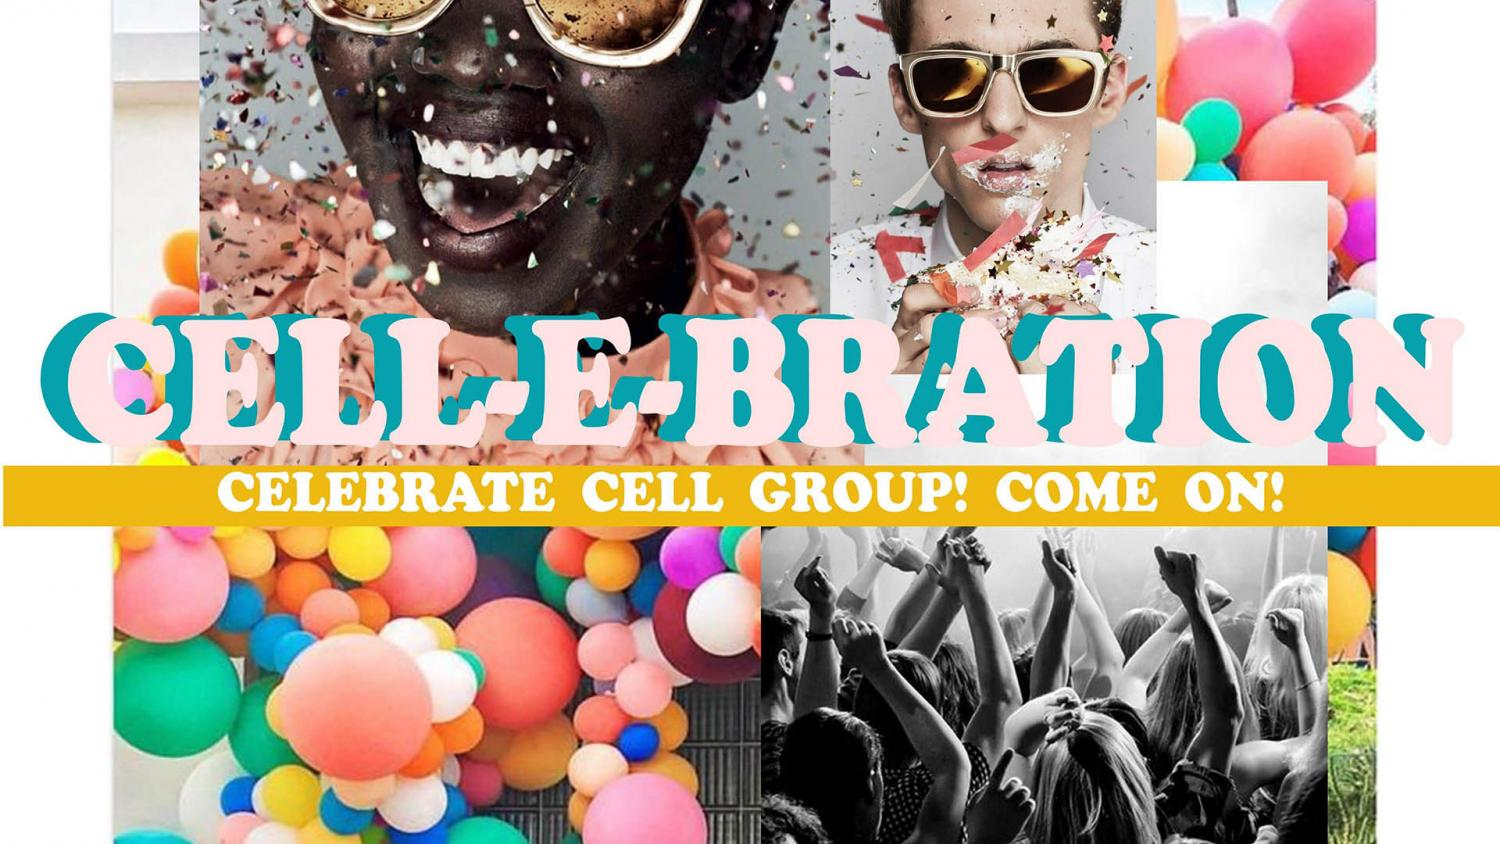 Cell-e-bration